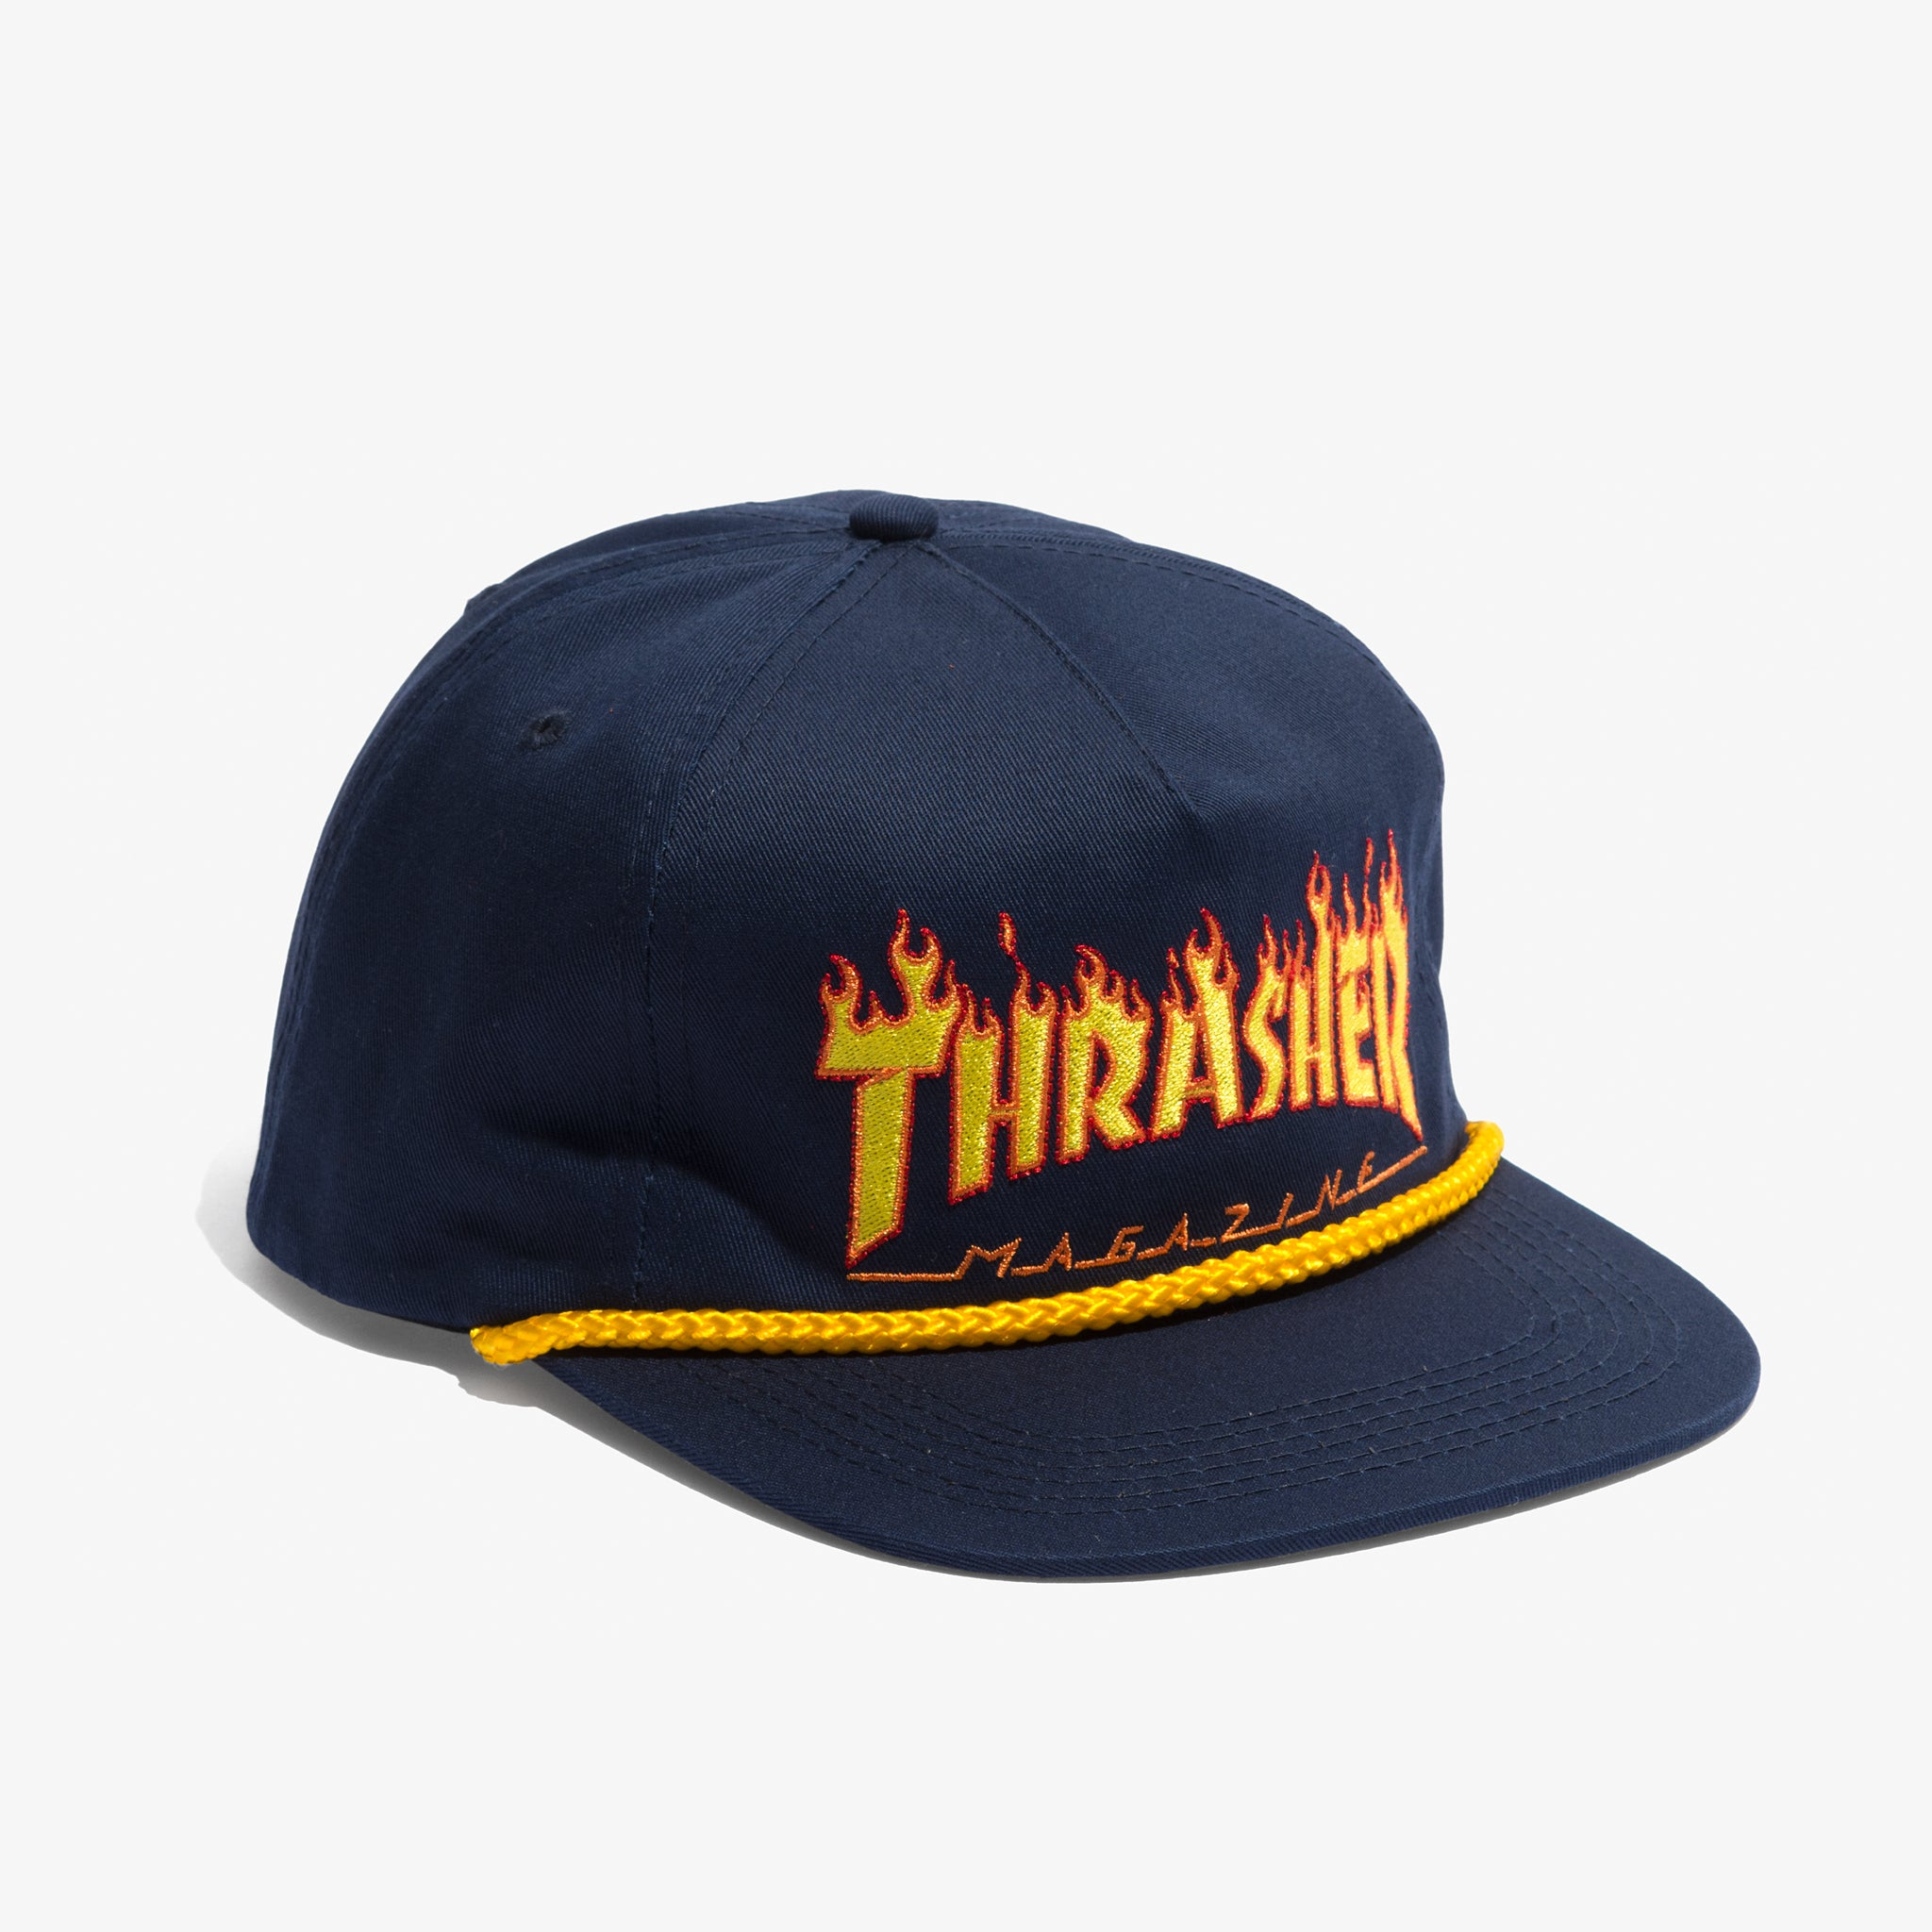 THRASHER FLAME LOGO ROPE HAT (NAVY) - 510skateboarding 92314955a35